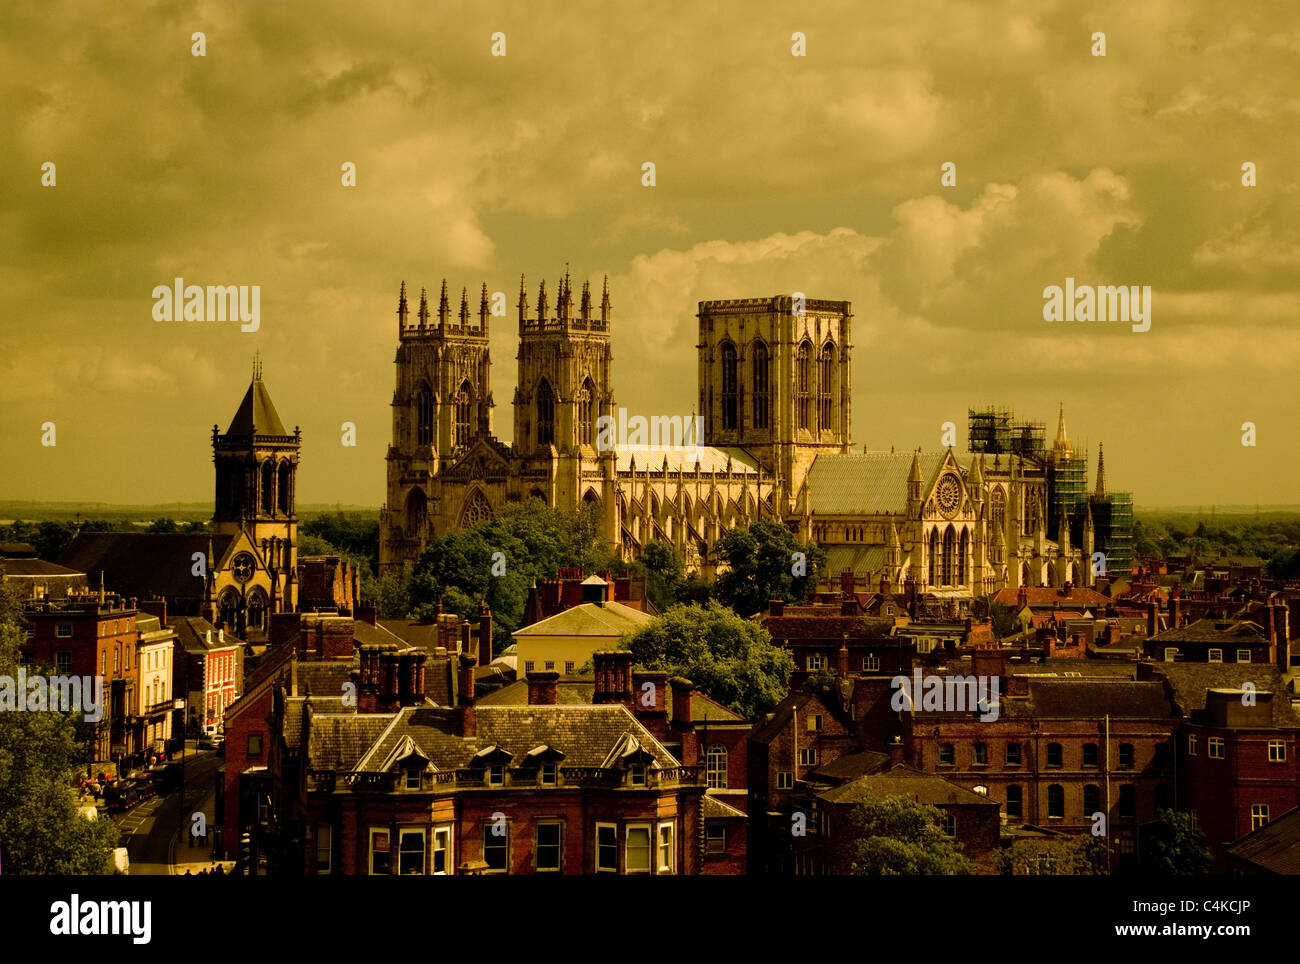 Landscape view of York Minster from high angle with heavy clouds in sepia tones - Stock Image